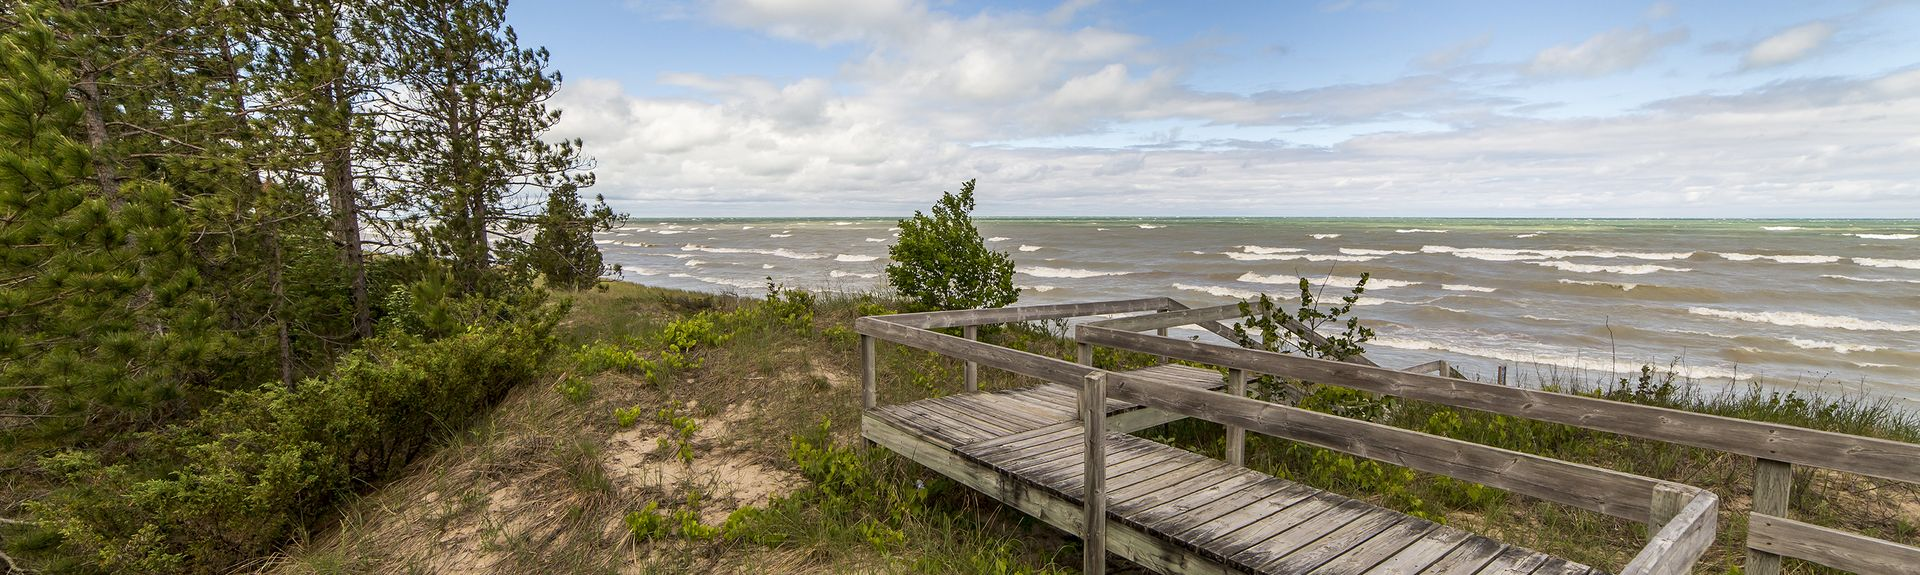 Grand Bend, Lambton Shores, Ontario, Canada